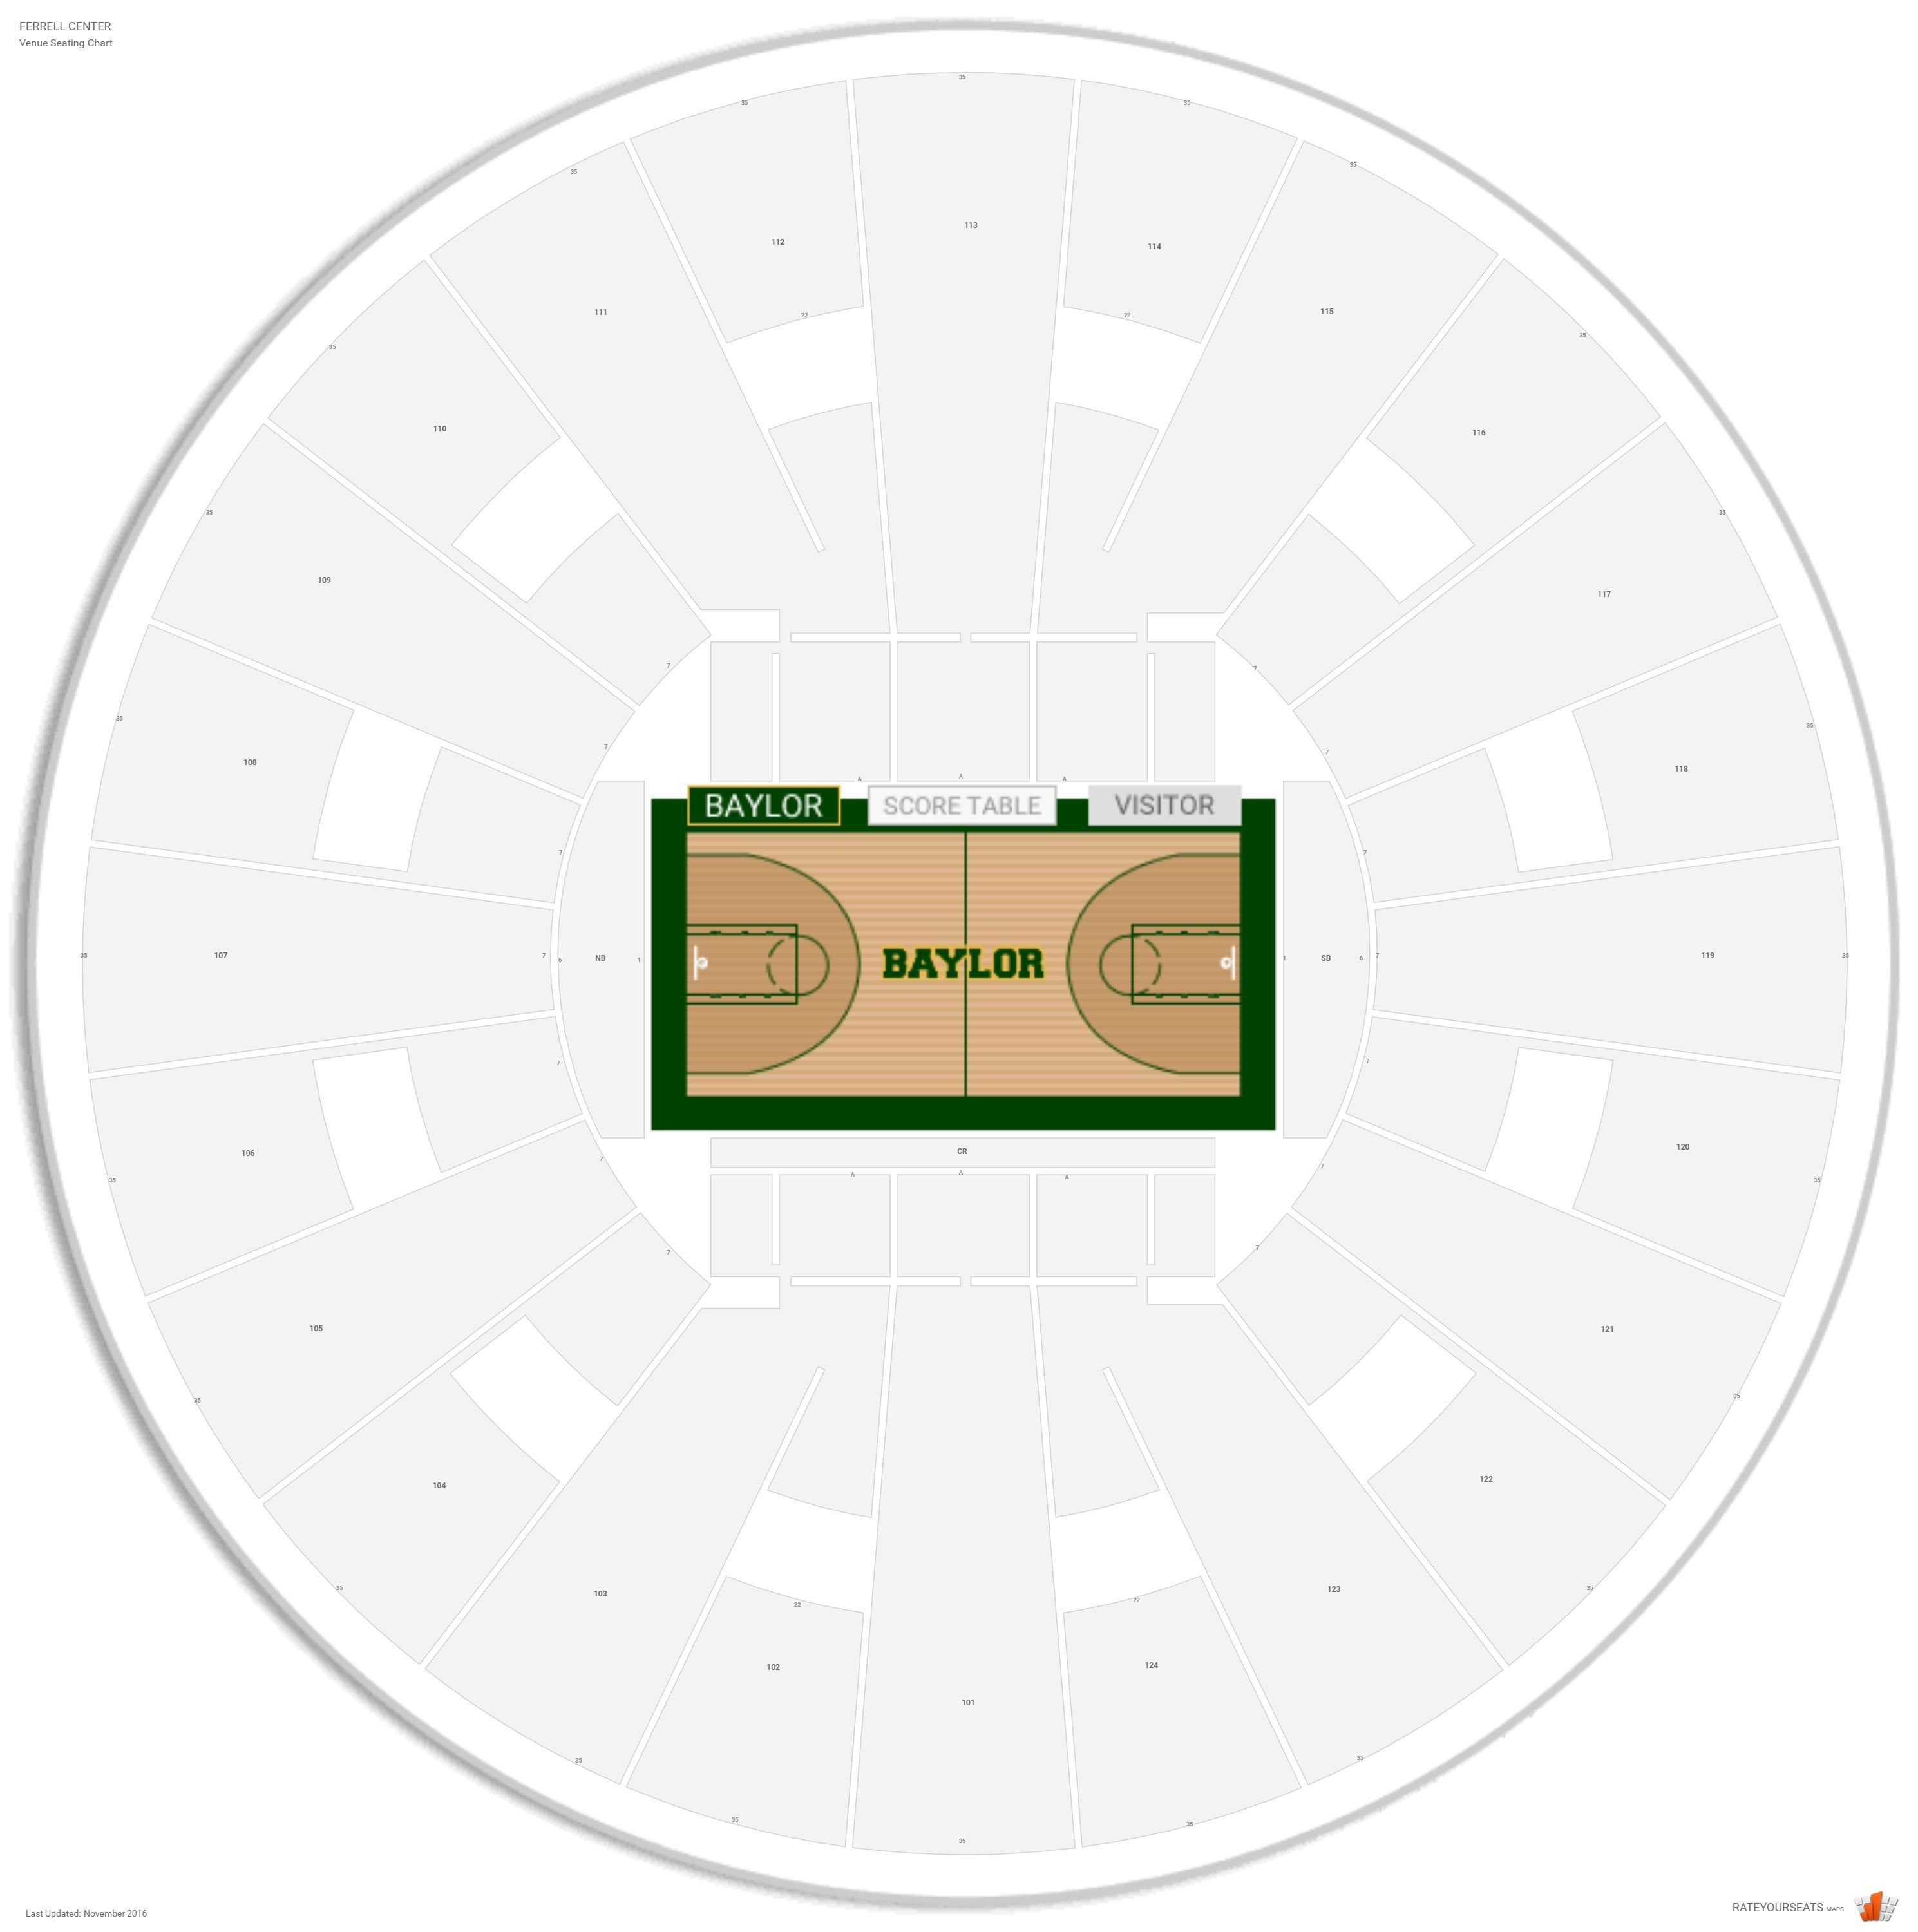 Ferrell Center Seating Chart With Row Numbers